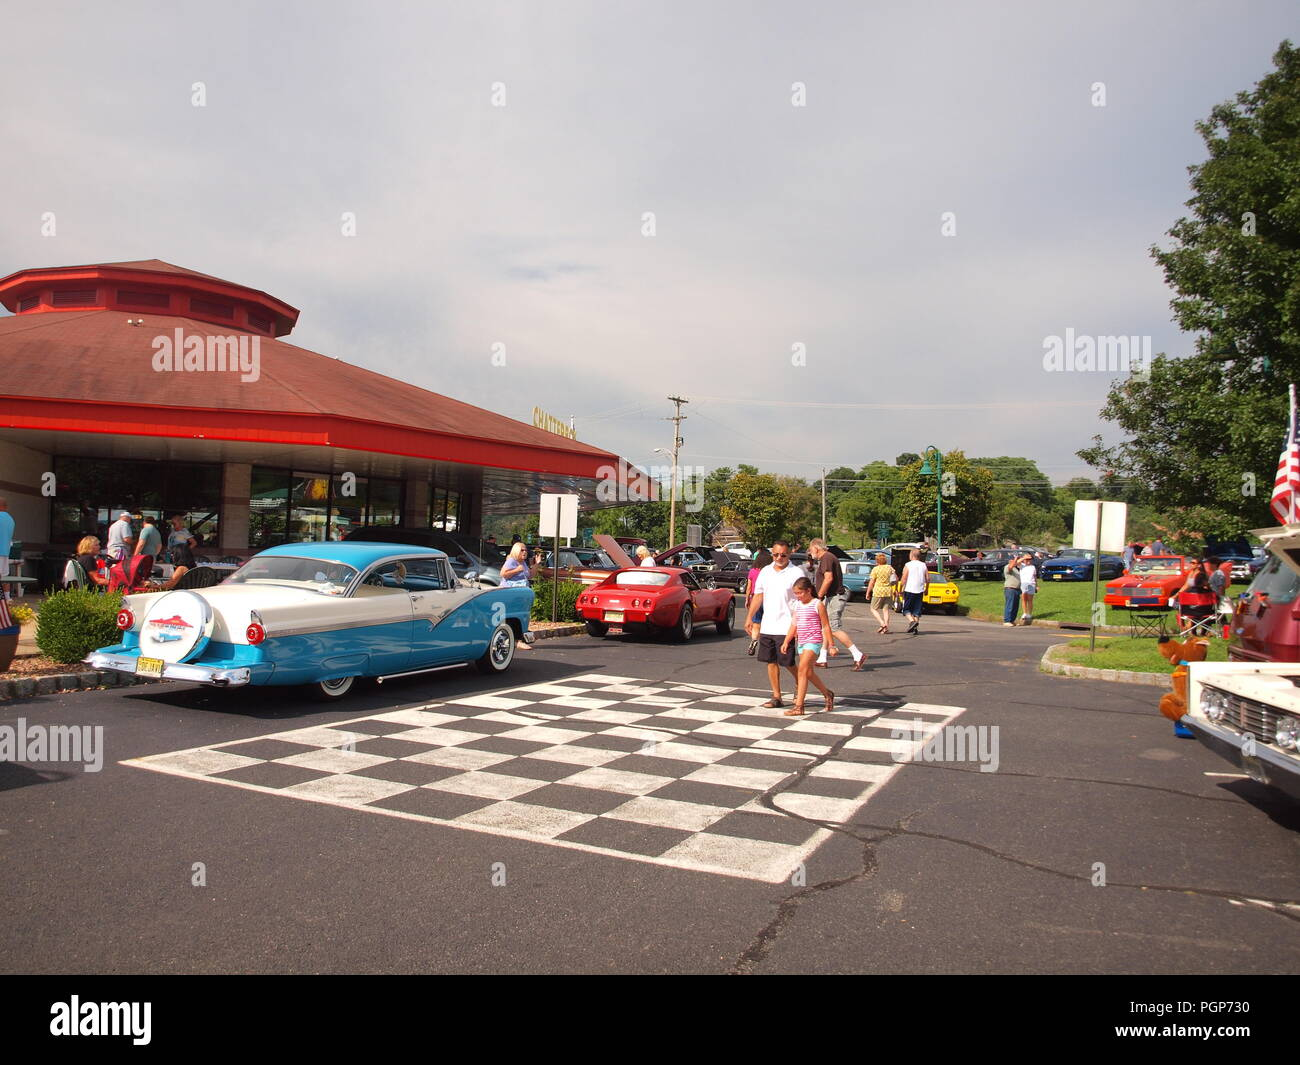 Car Show At The Chatterbox Restaurant In Augusta NJ During Its - Augusta car show